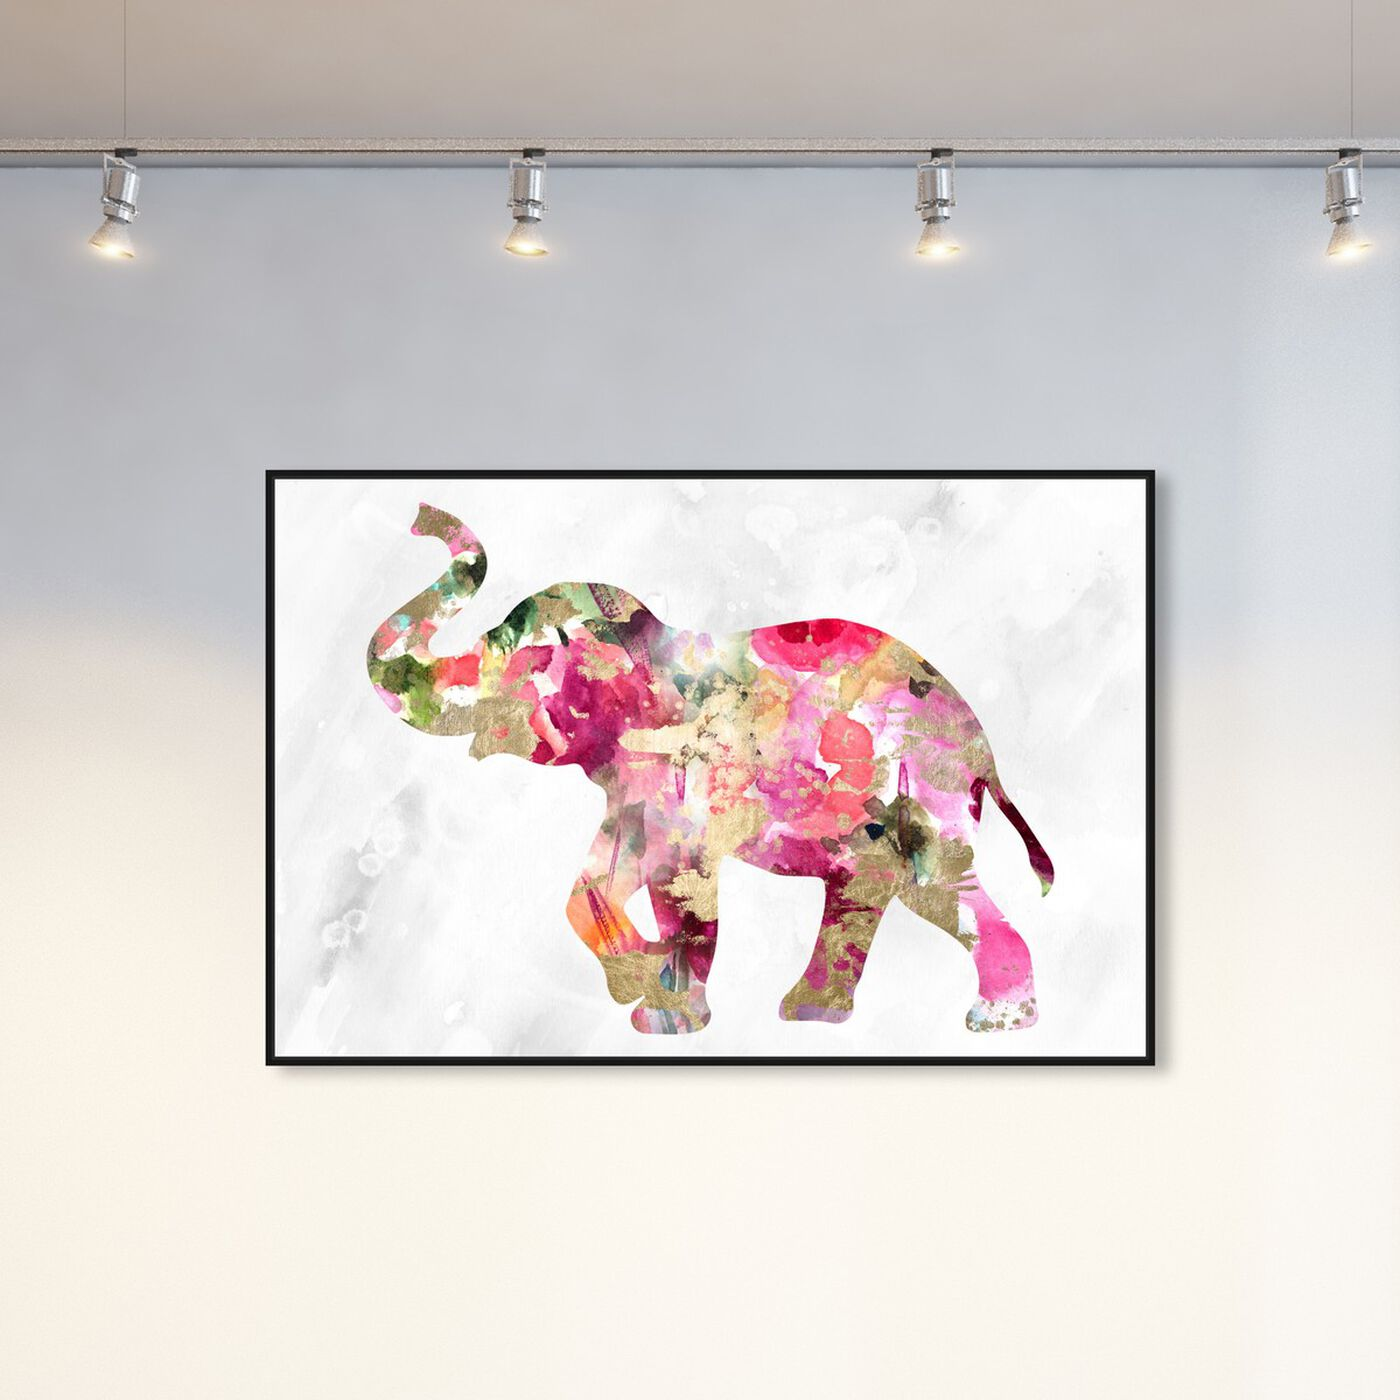 Hanging view of Elephant Floral featuring animals and zoo and wild animals art.